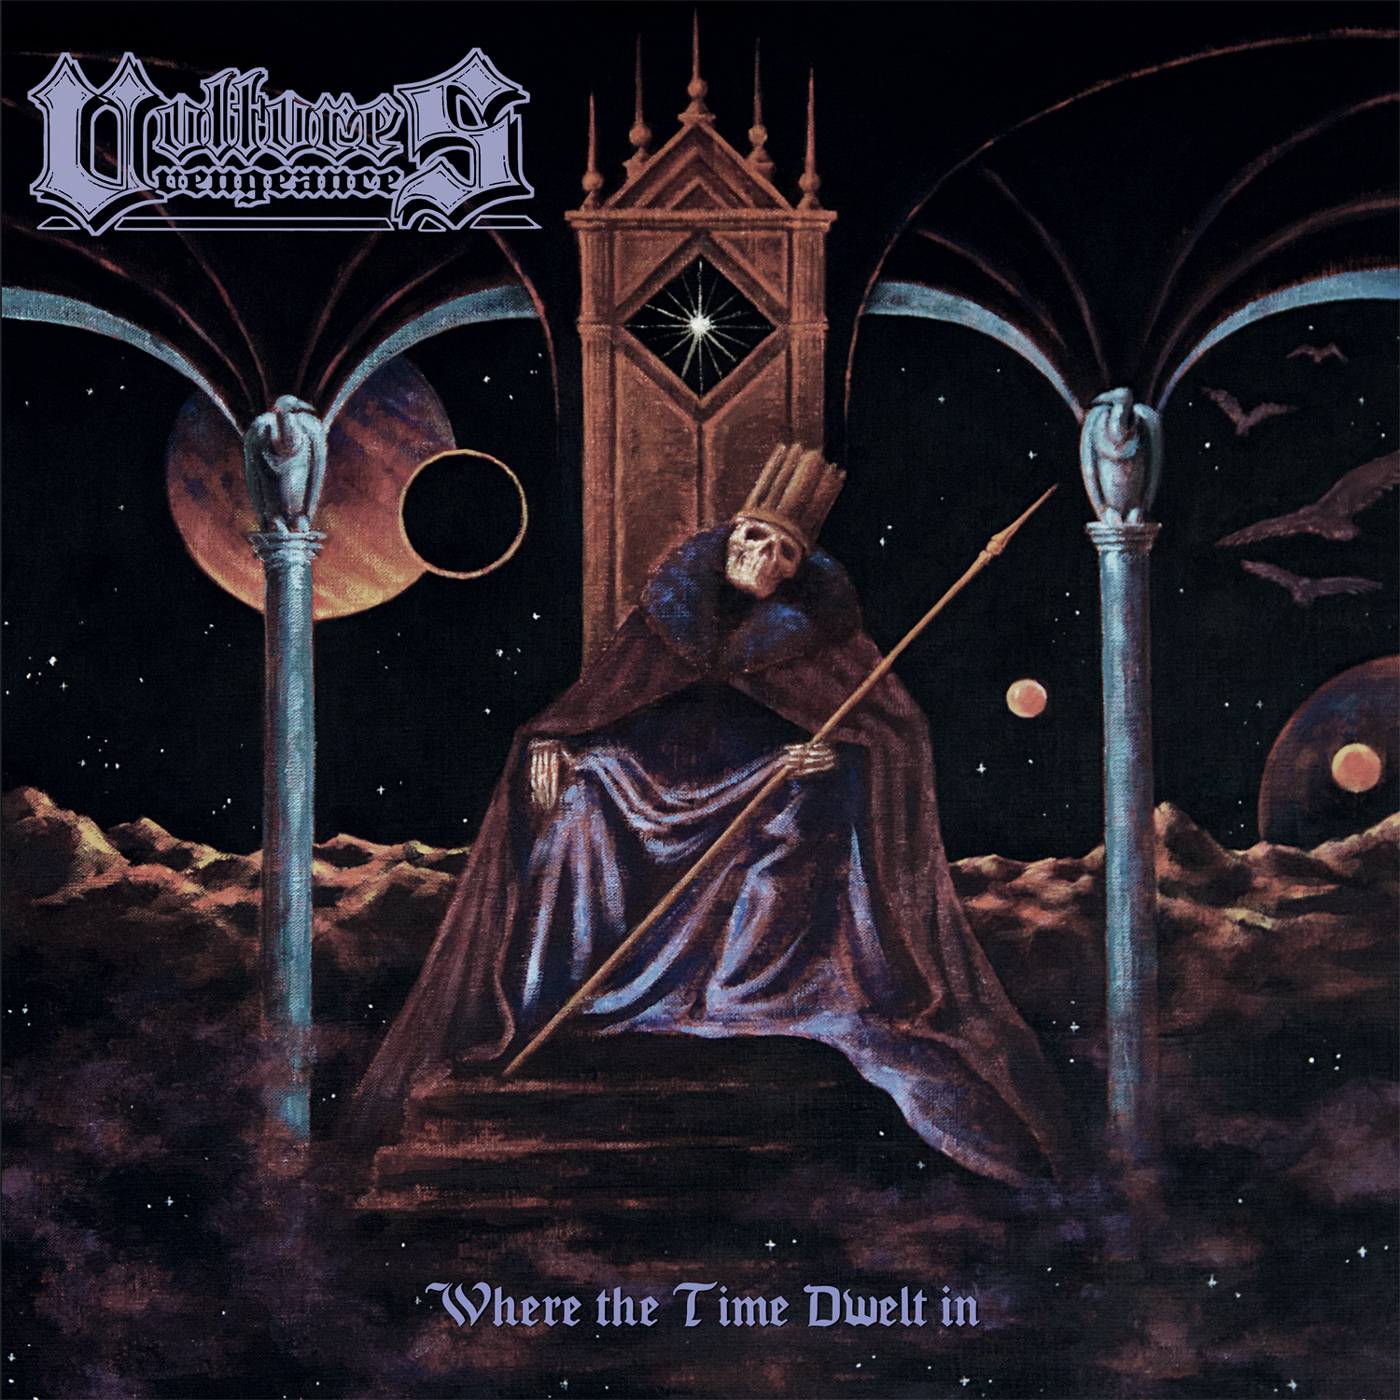 Vultures Vengeance – Where The Time Dwelt In